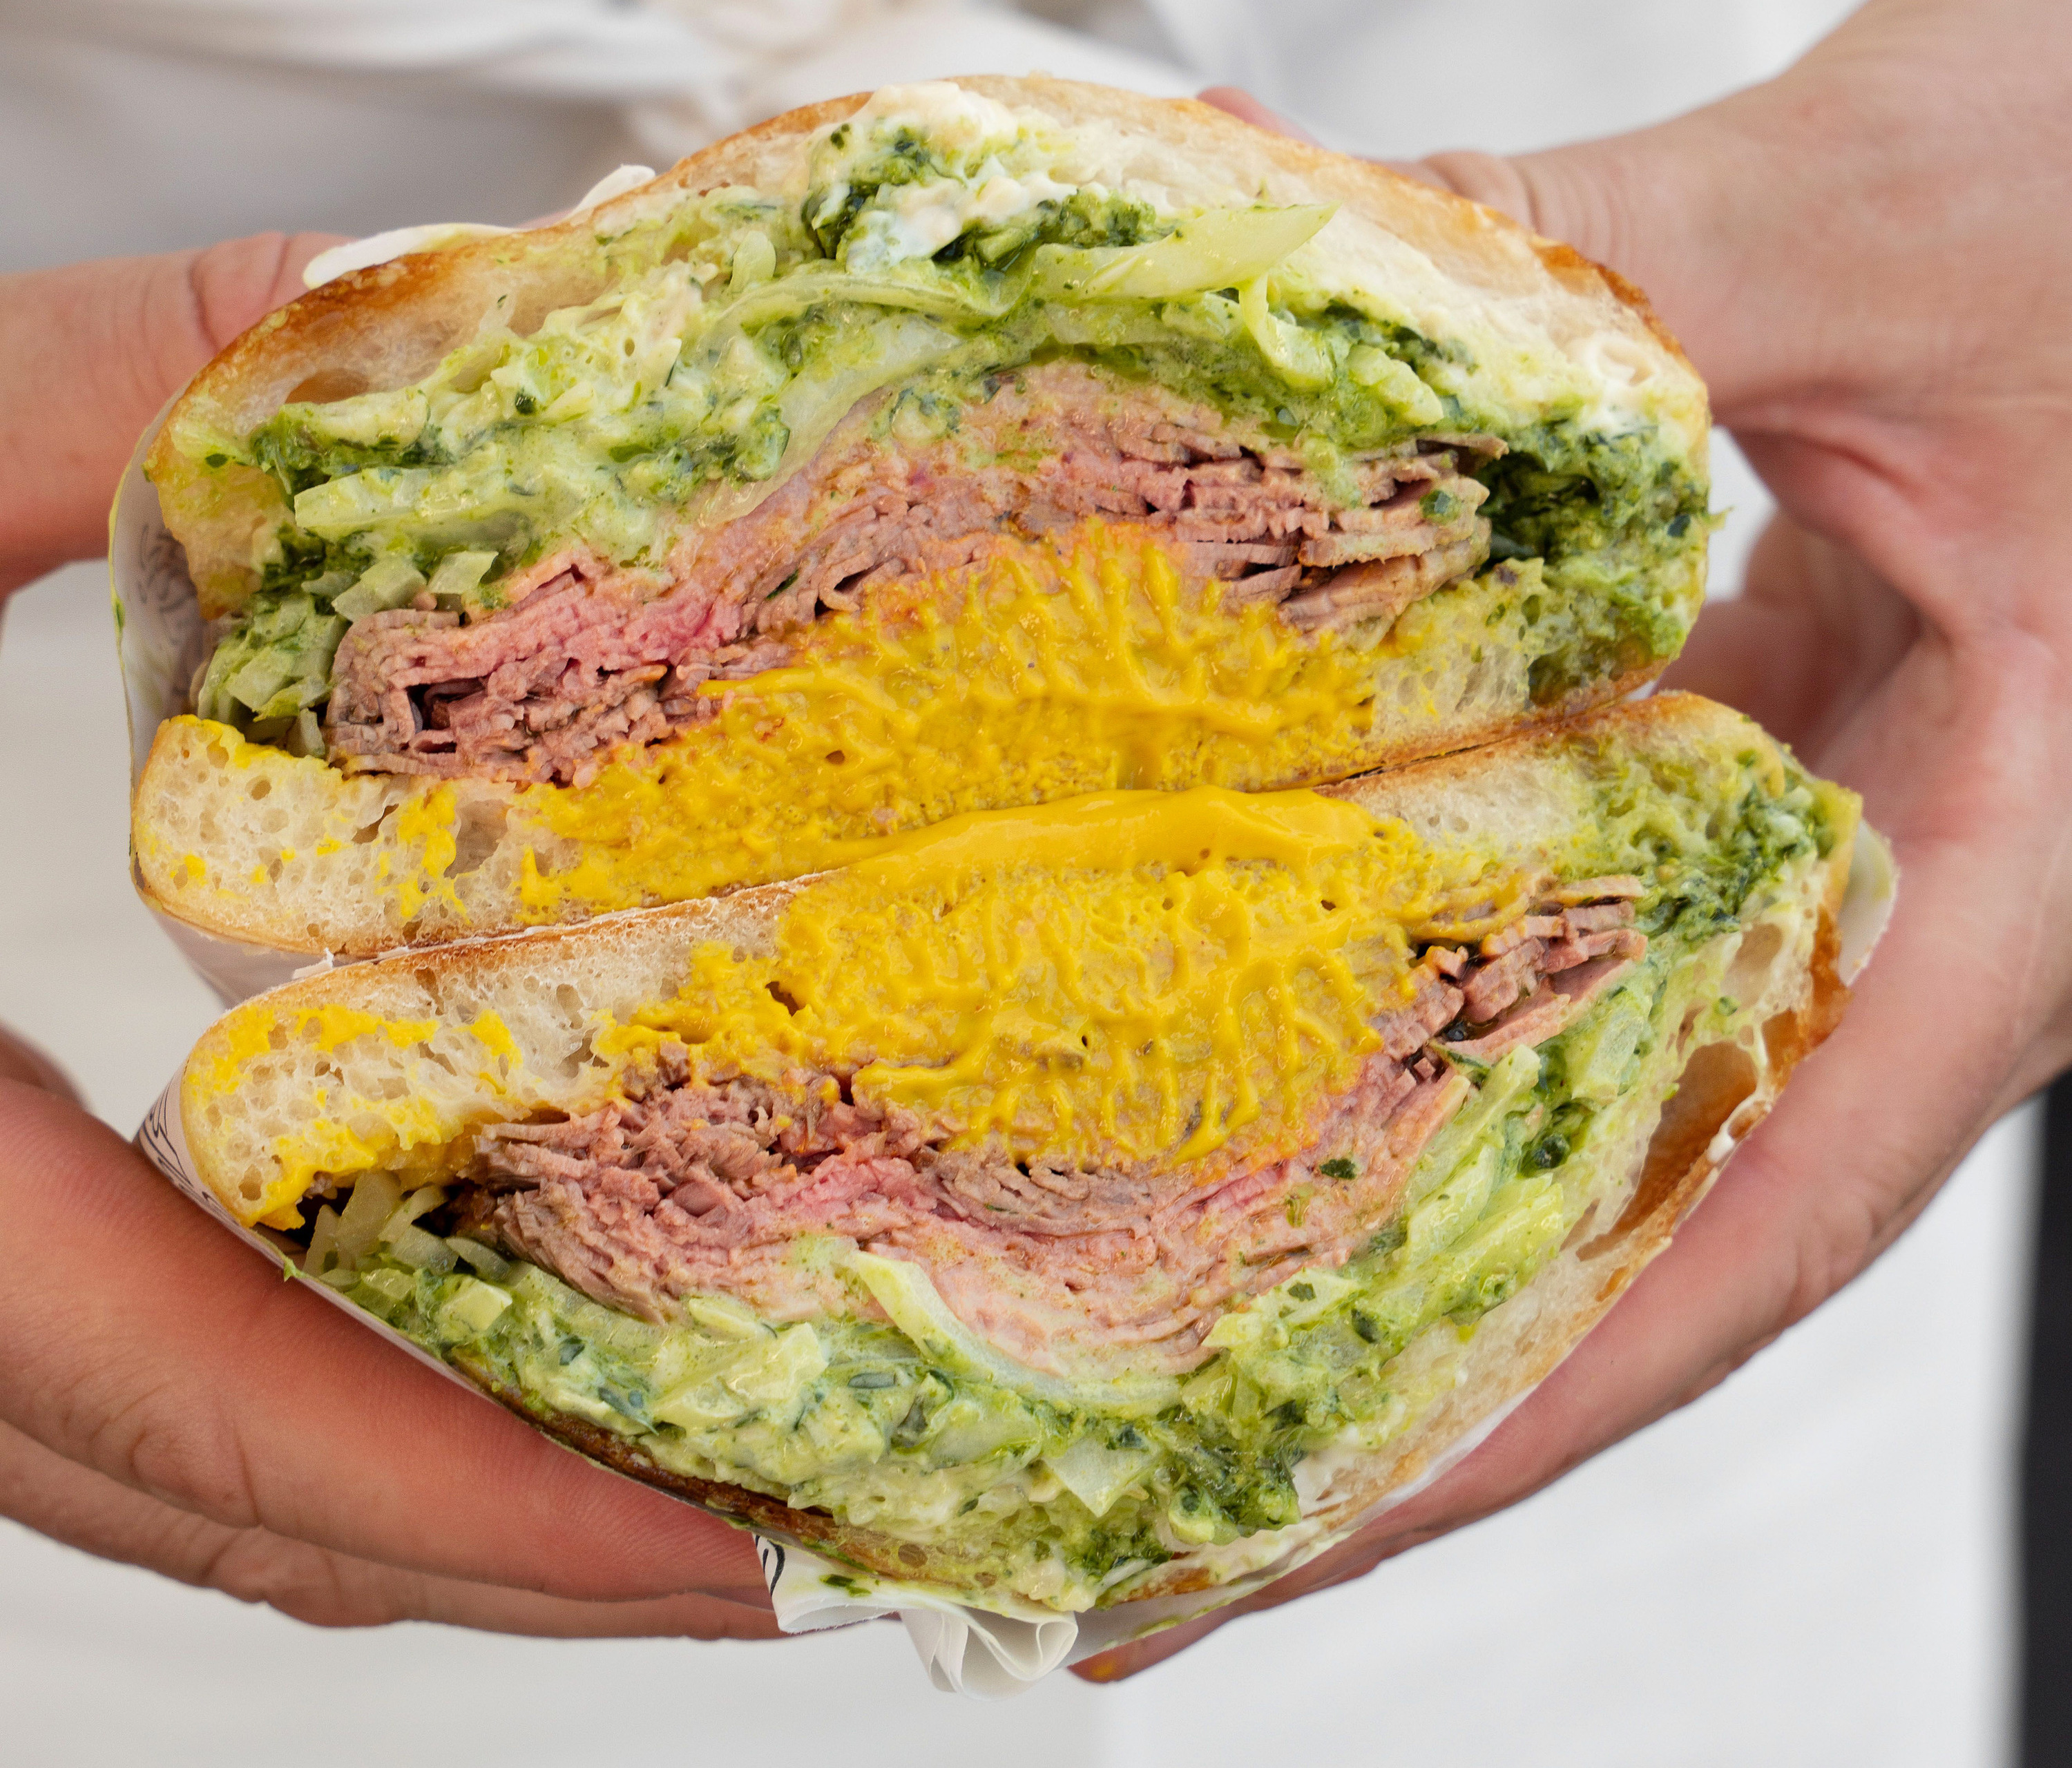 Hector's Deli is opening a sister venue in South Melbourne